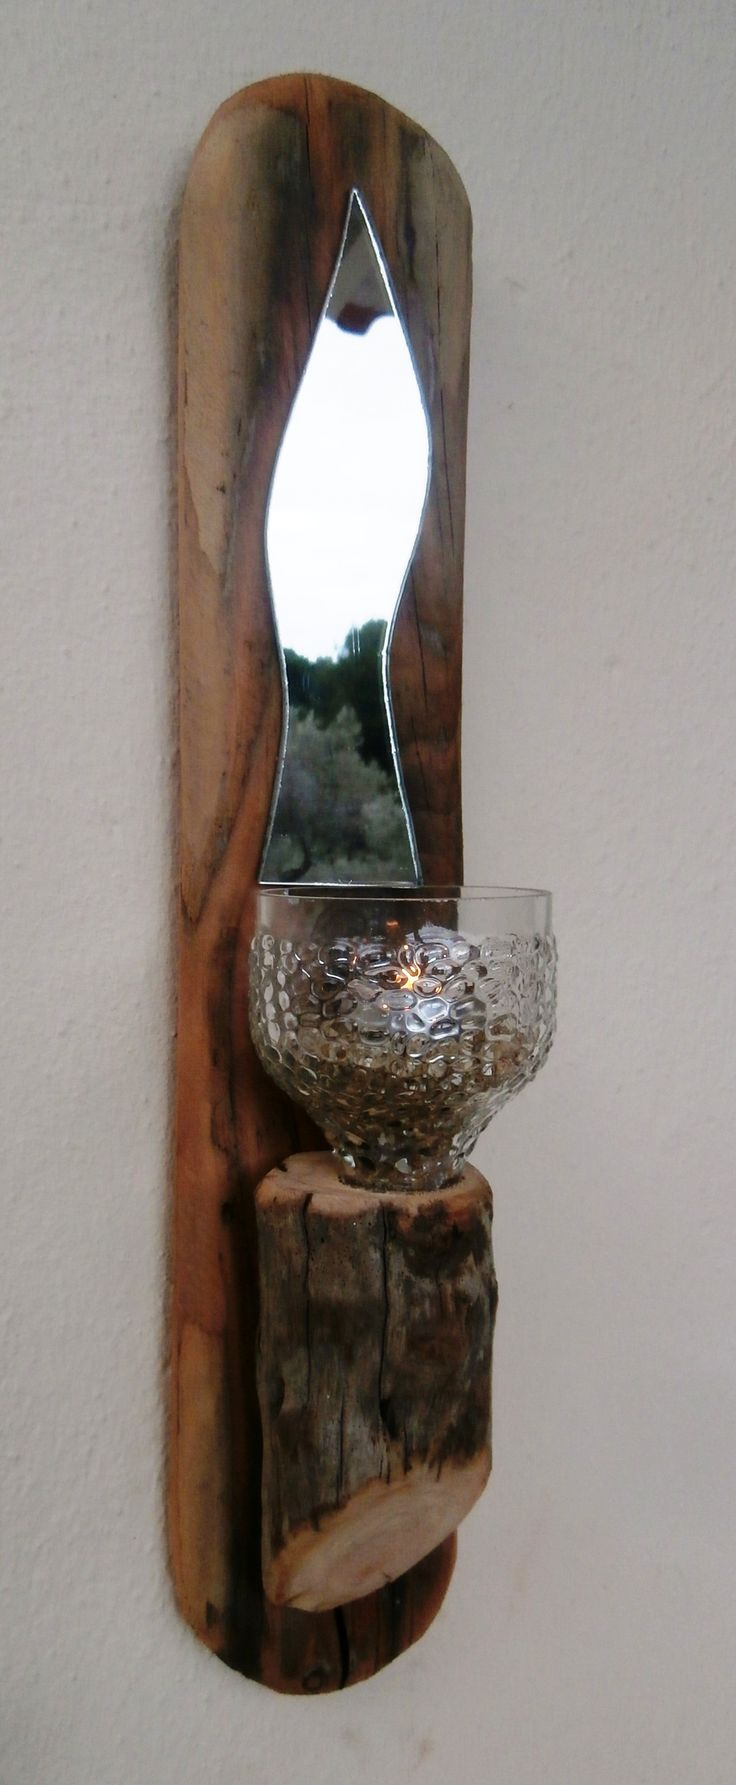 Unique driftwood wall hanging tealight sconce, featuring mirror shard and glass tealight holder.